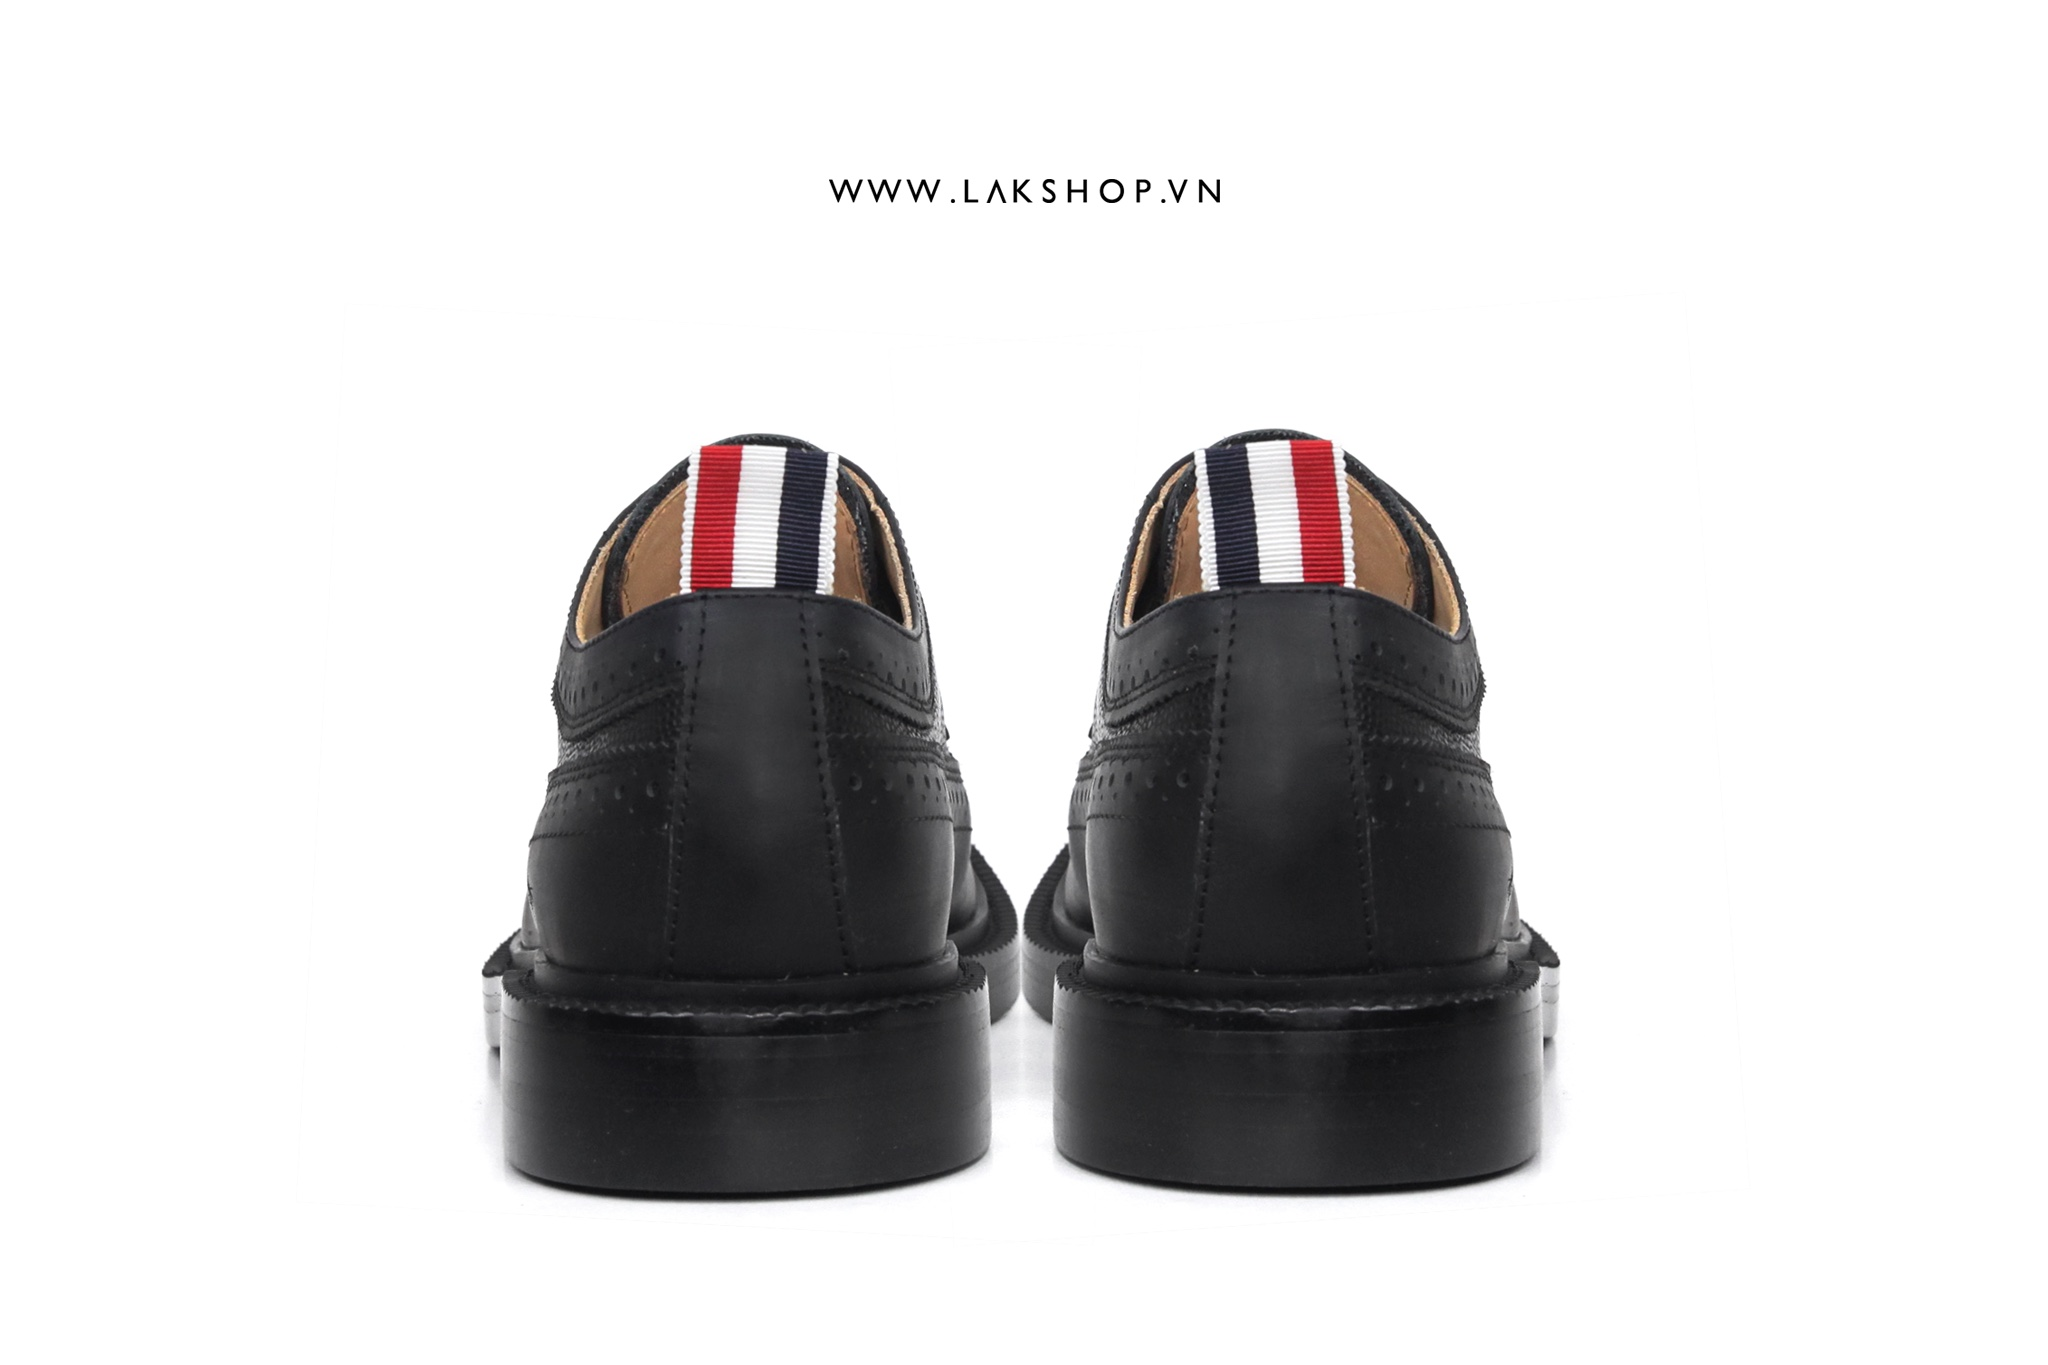 Thom Browne Classic Brogue Leather Derby Shoes